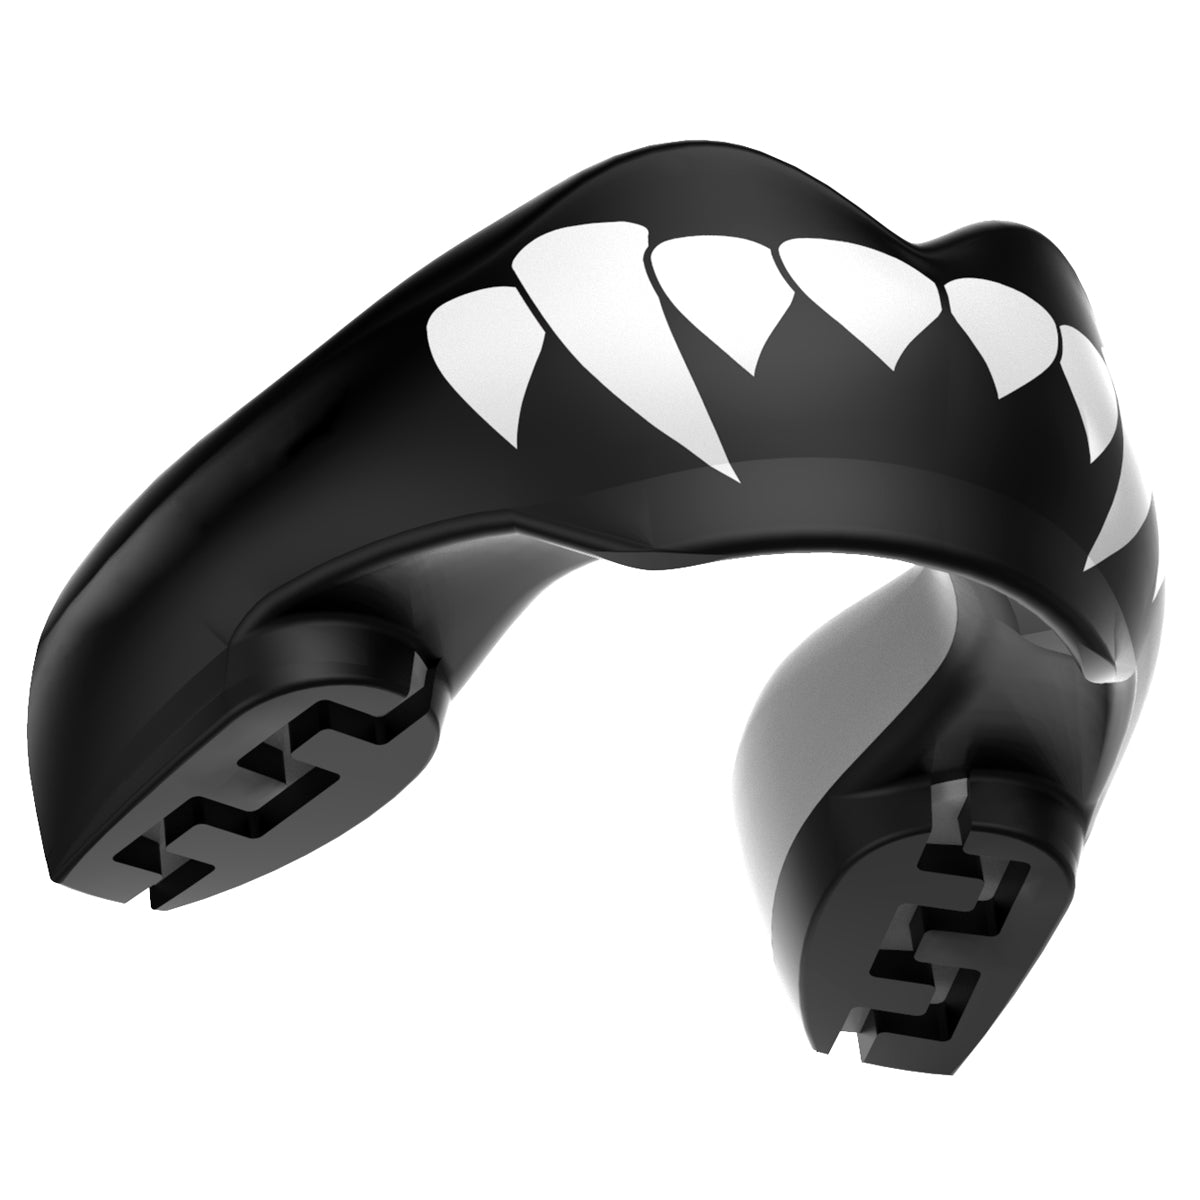 SAFEJAWZ® Ortho Series Self-Fit 'Fangz' Mouthguard for Braces. - SAFEJAWZ gum shield